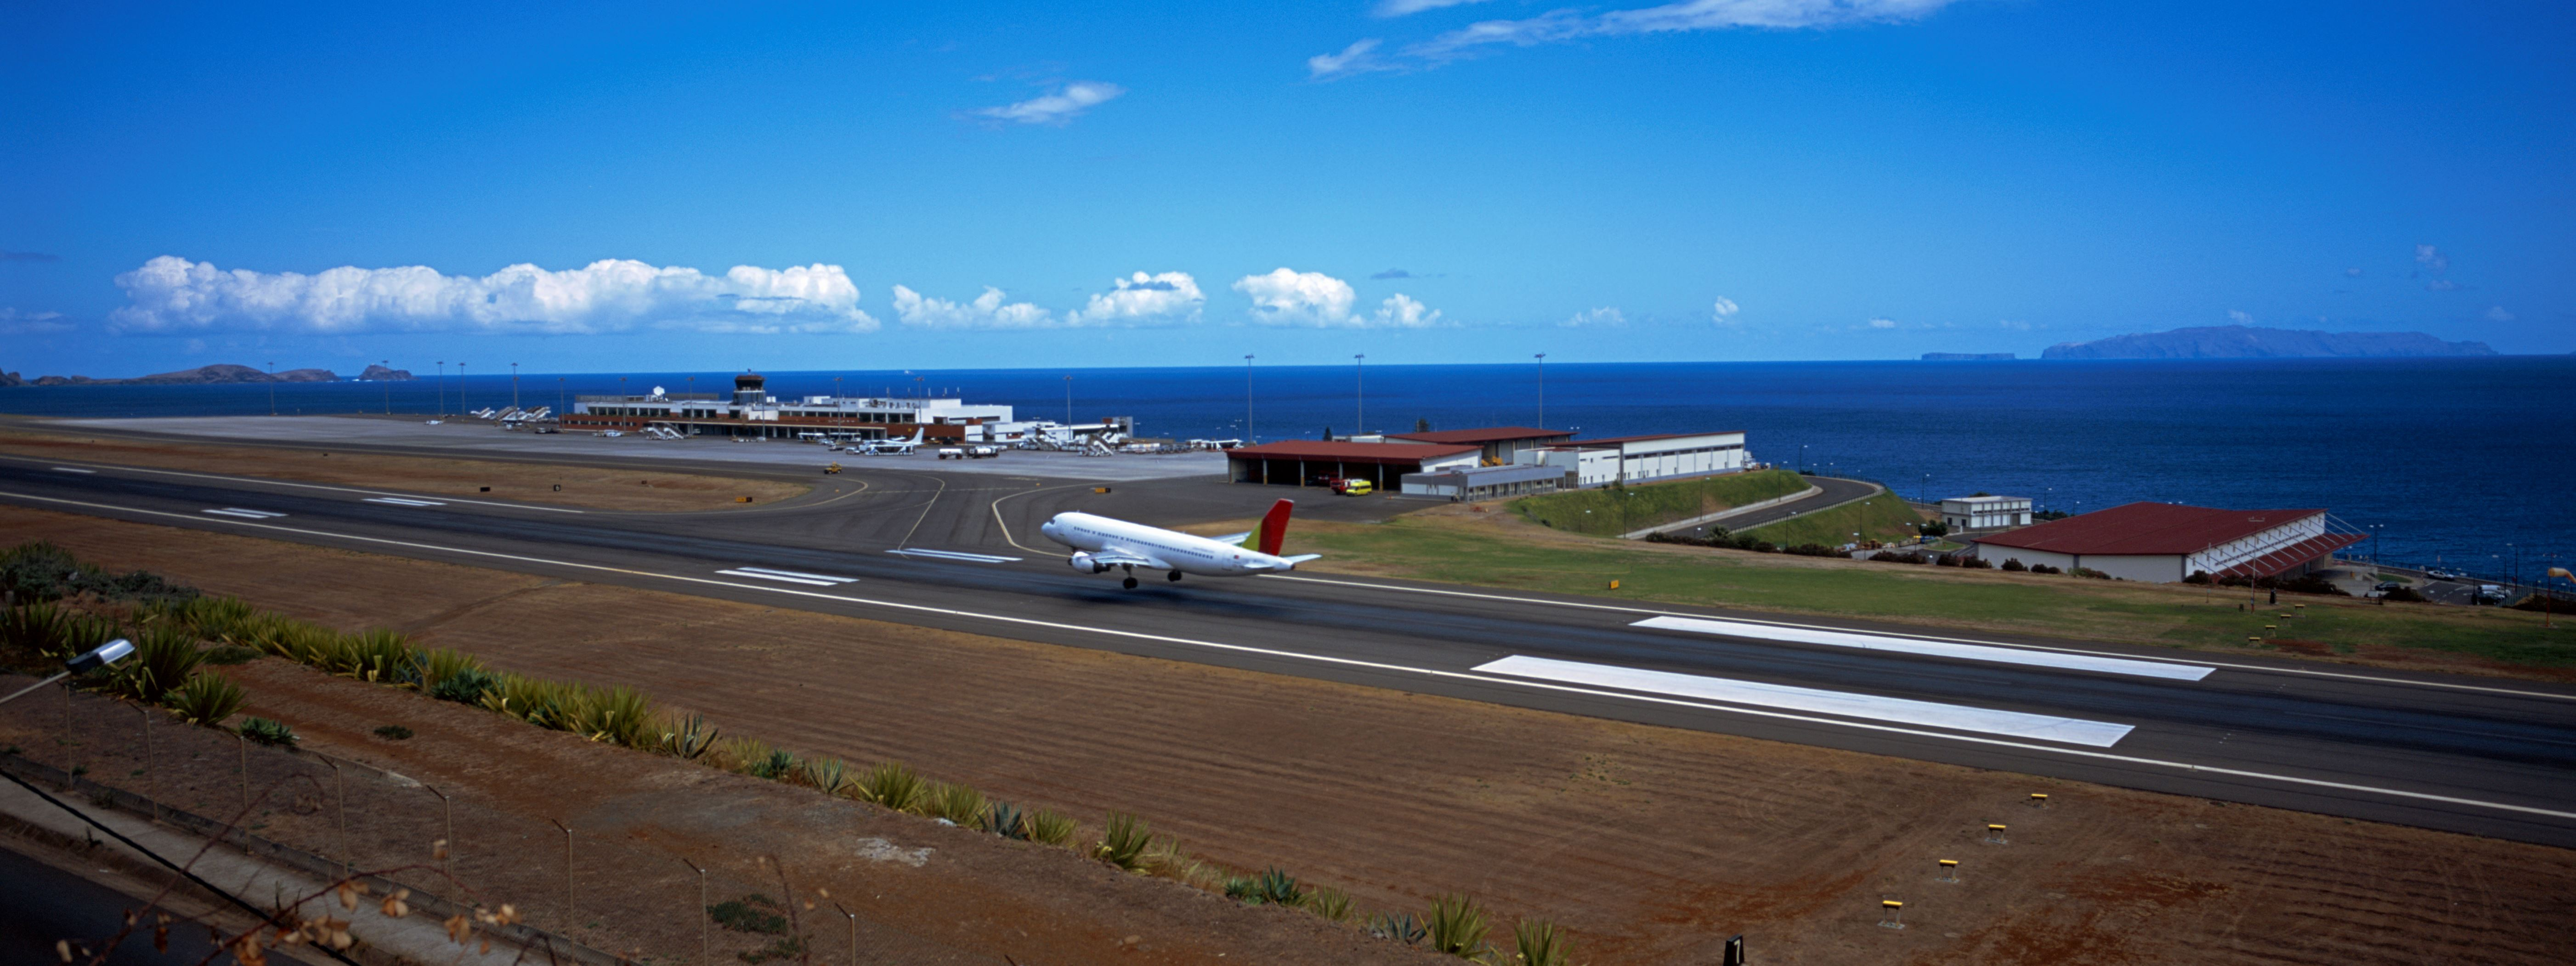 Slide 4 of 20: Airplane on the runway at an airport, Funchal Airport, Funchal, Madeira, Portugal